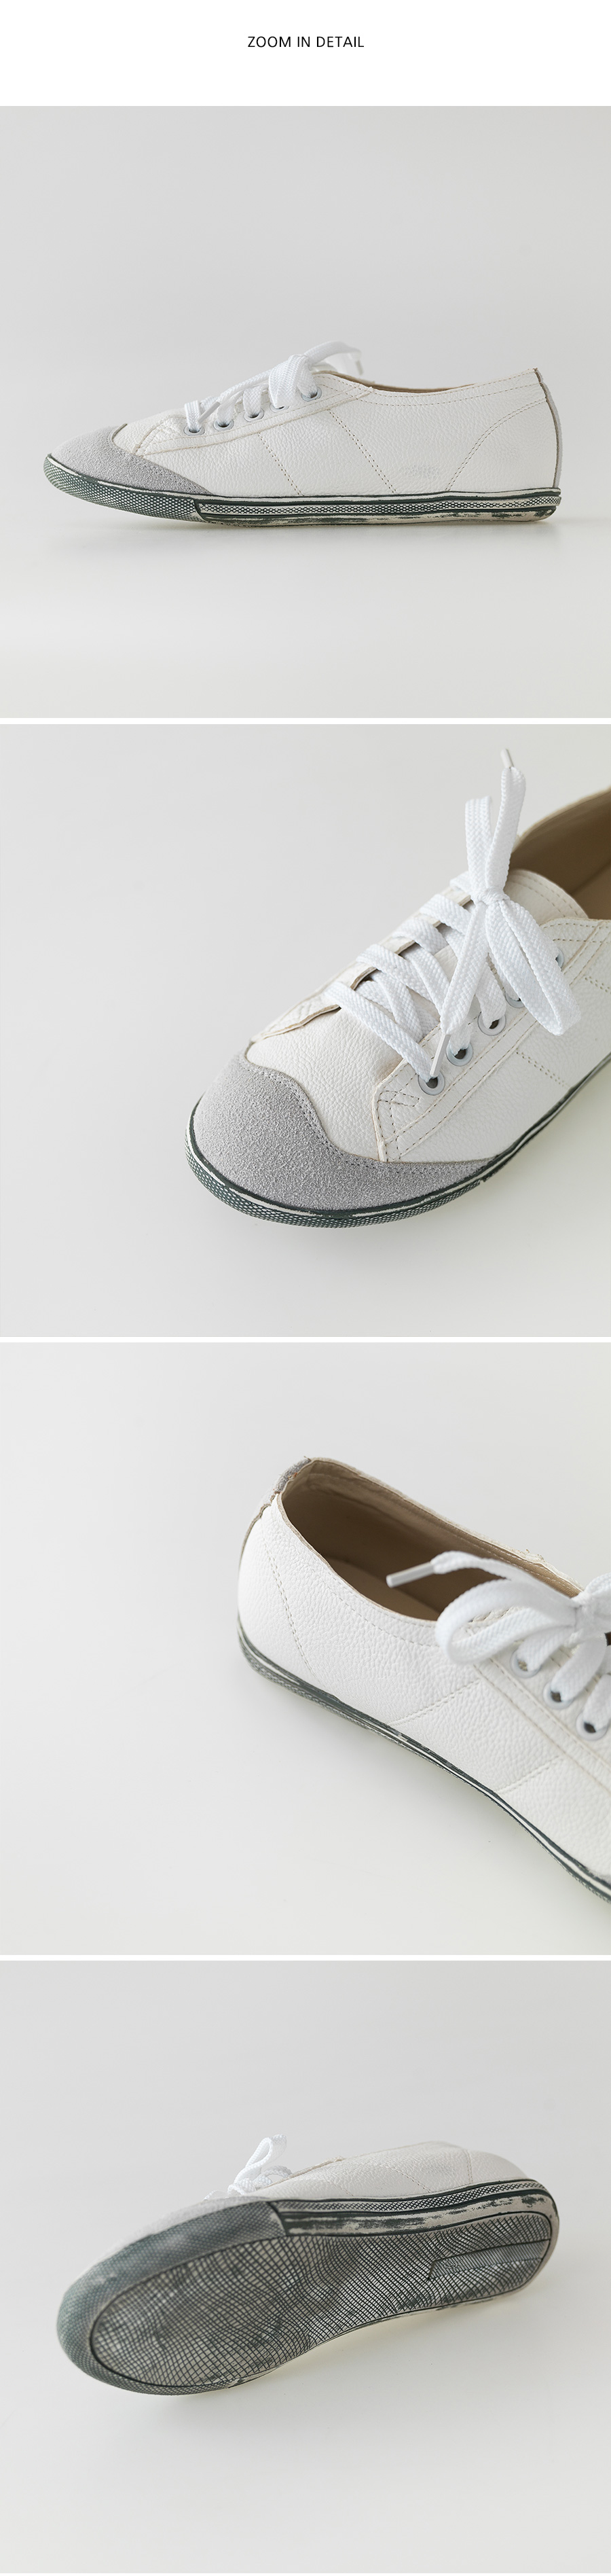 vintage coloring daily sneakers